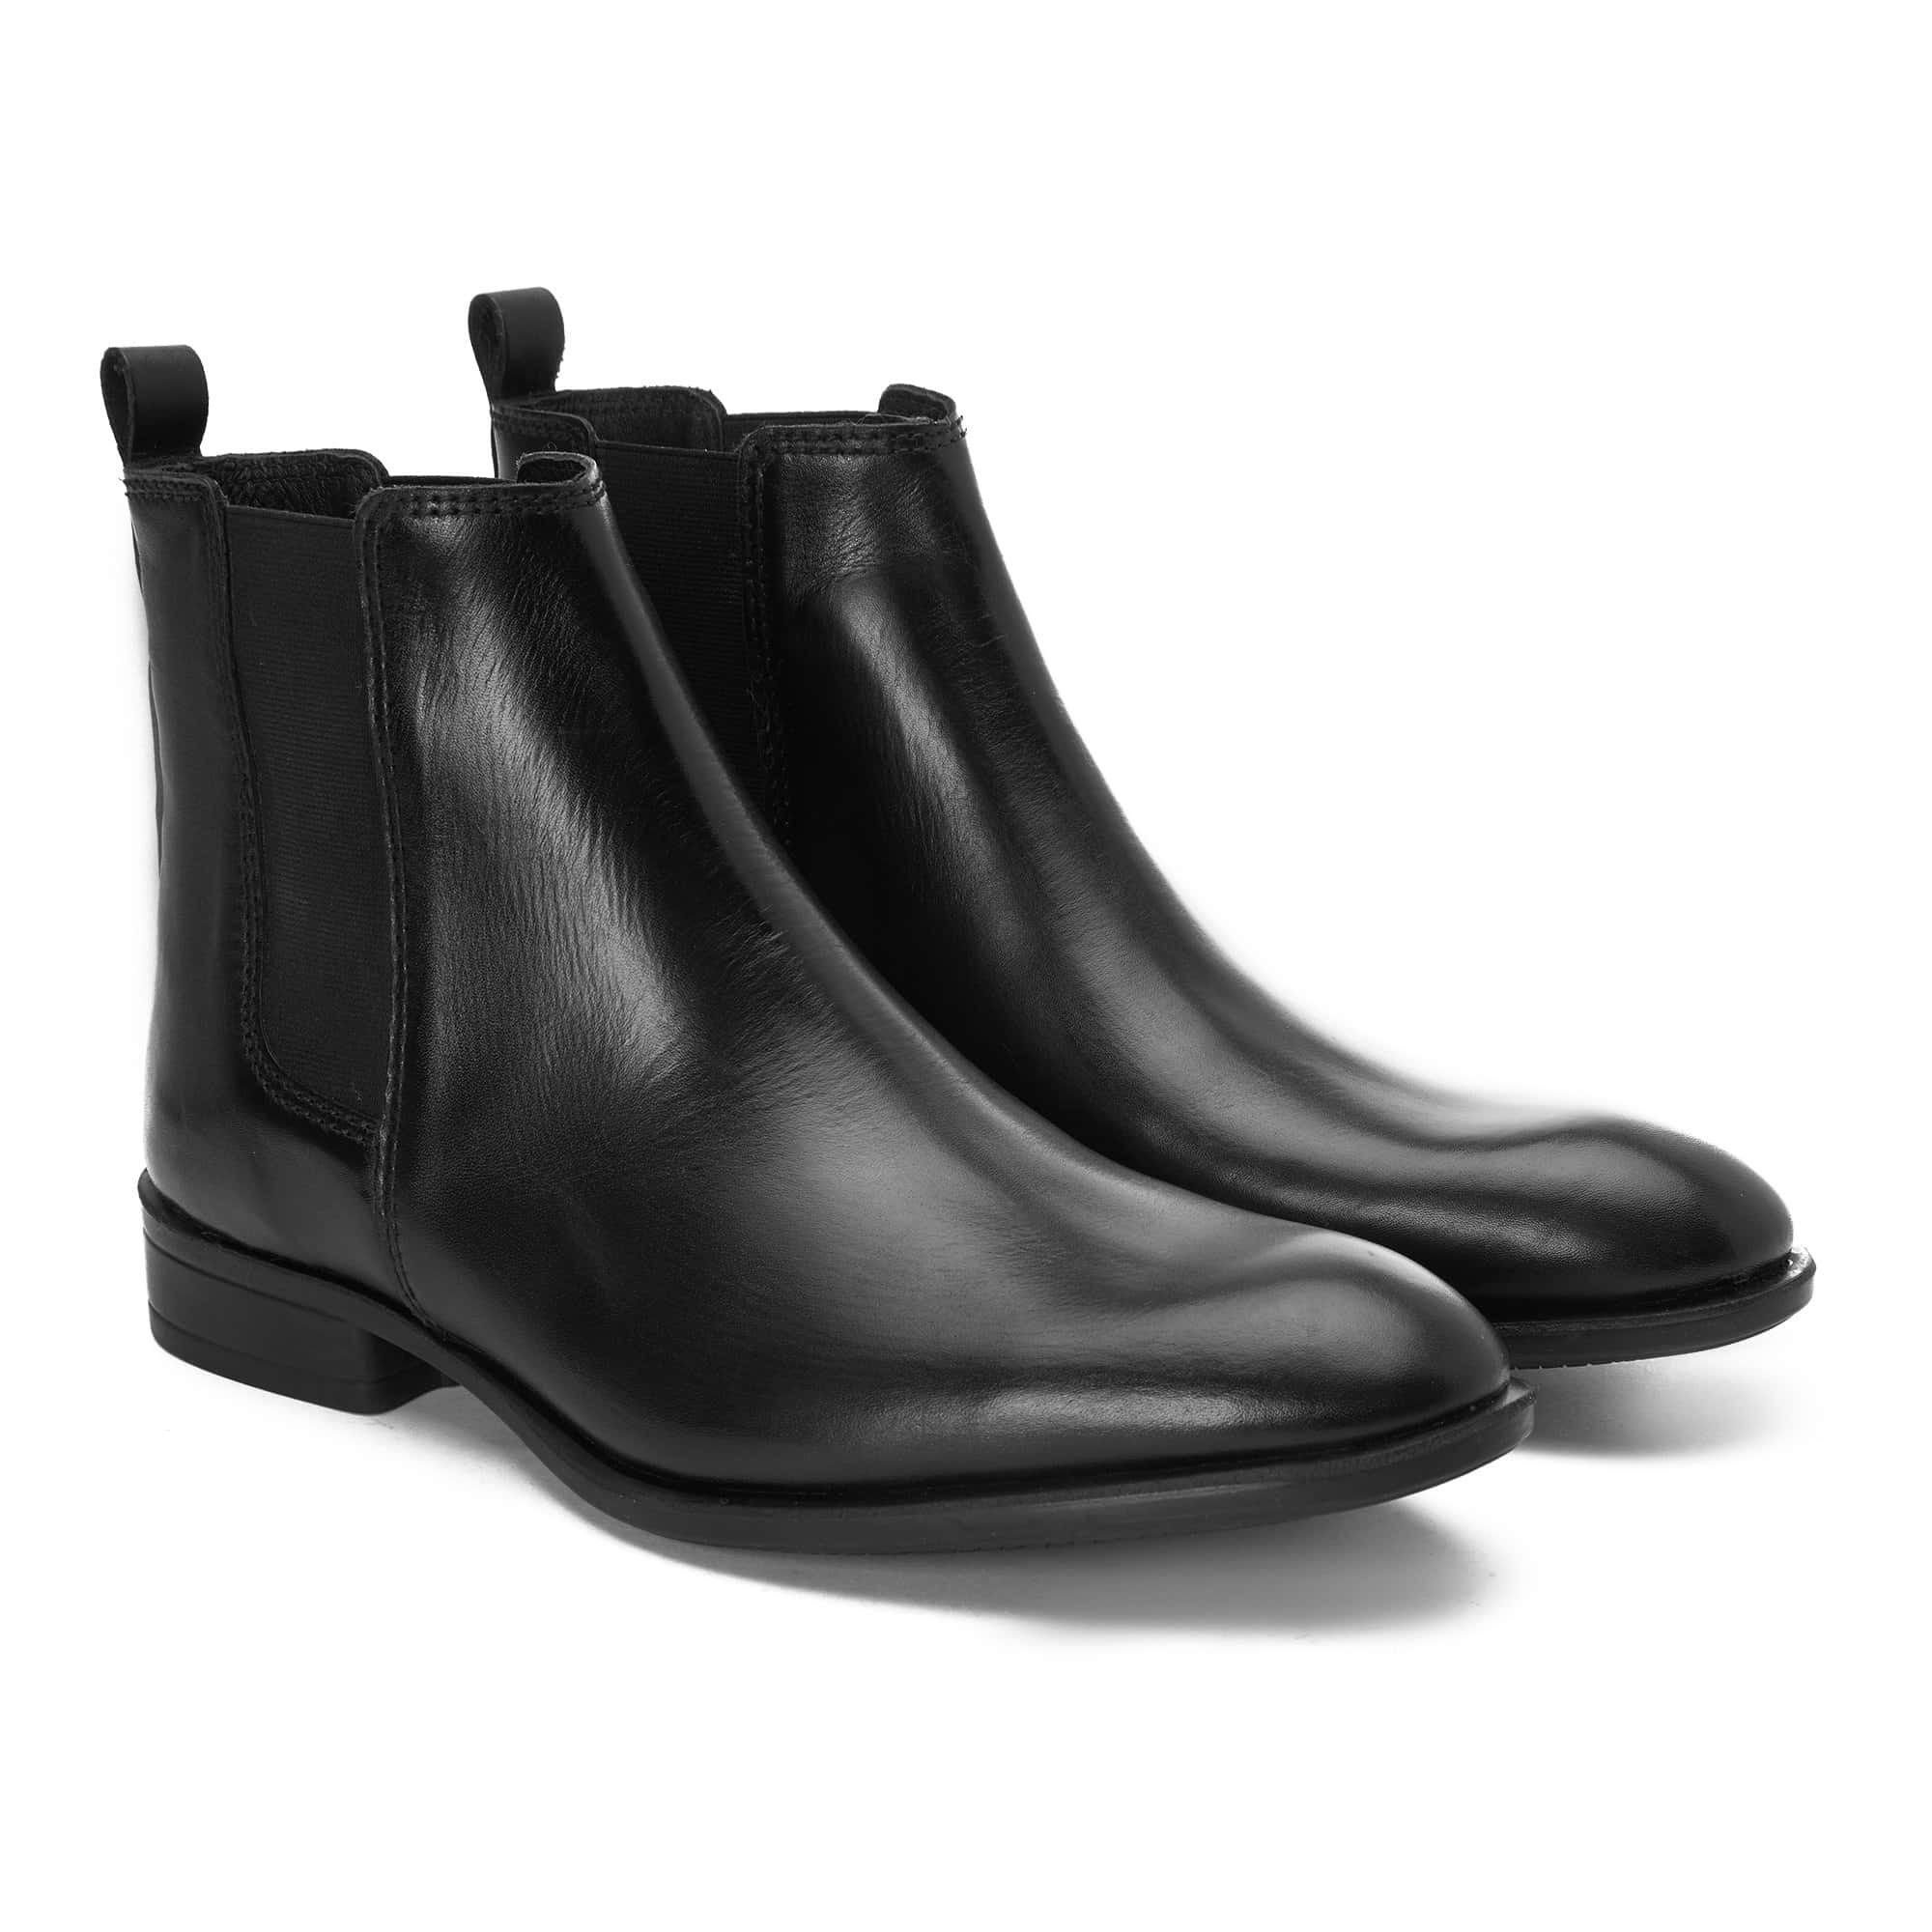 Half boot leather black